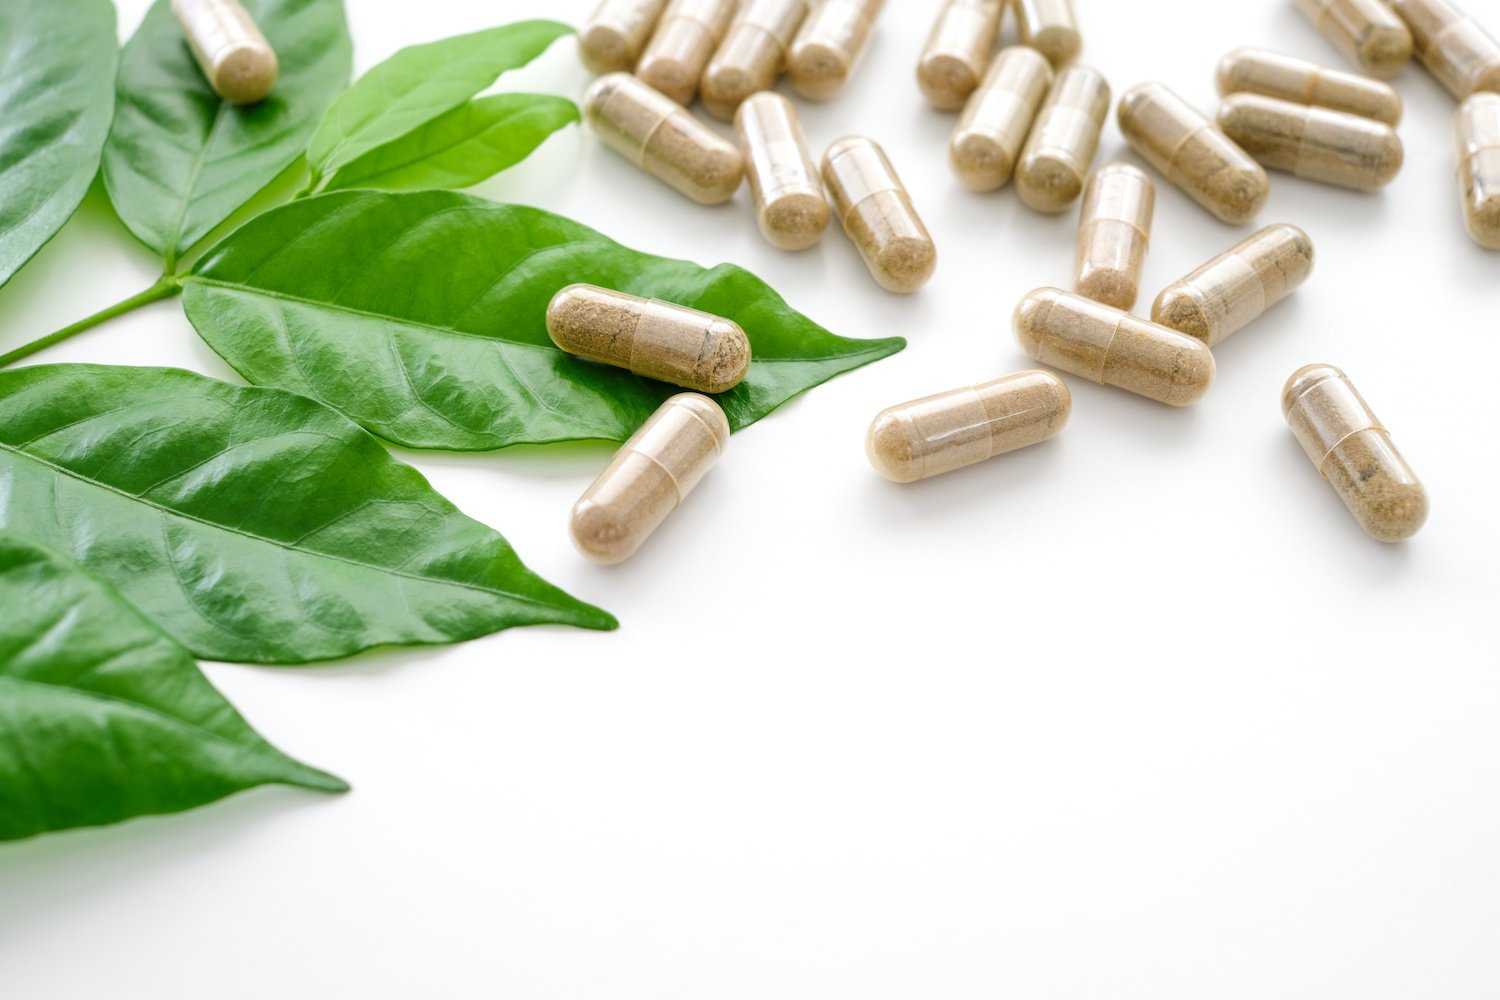 Herbal capsules and leaves on a white surface